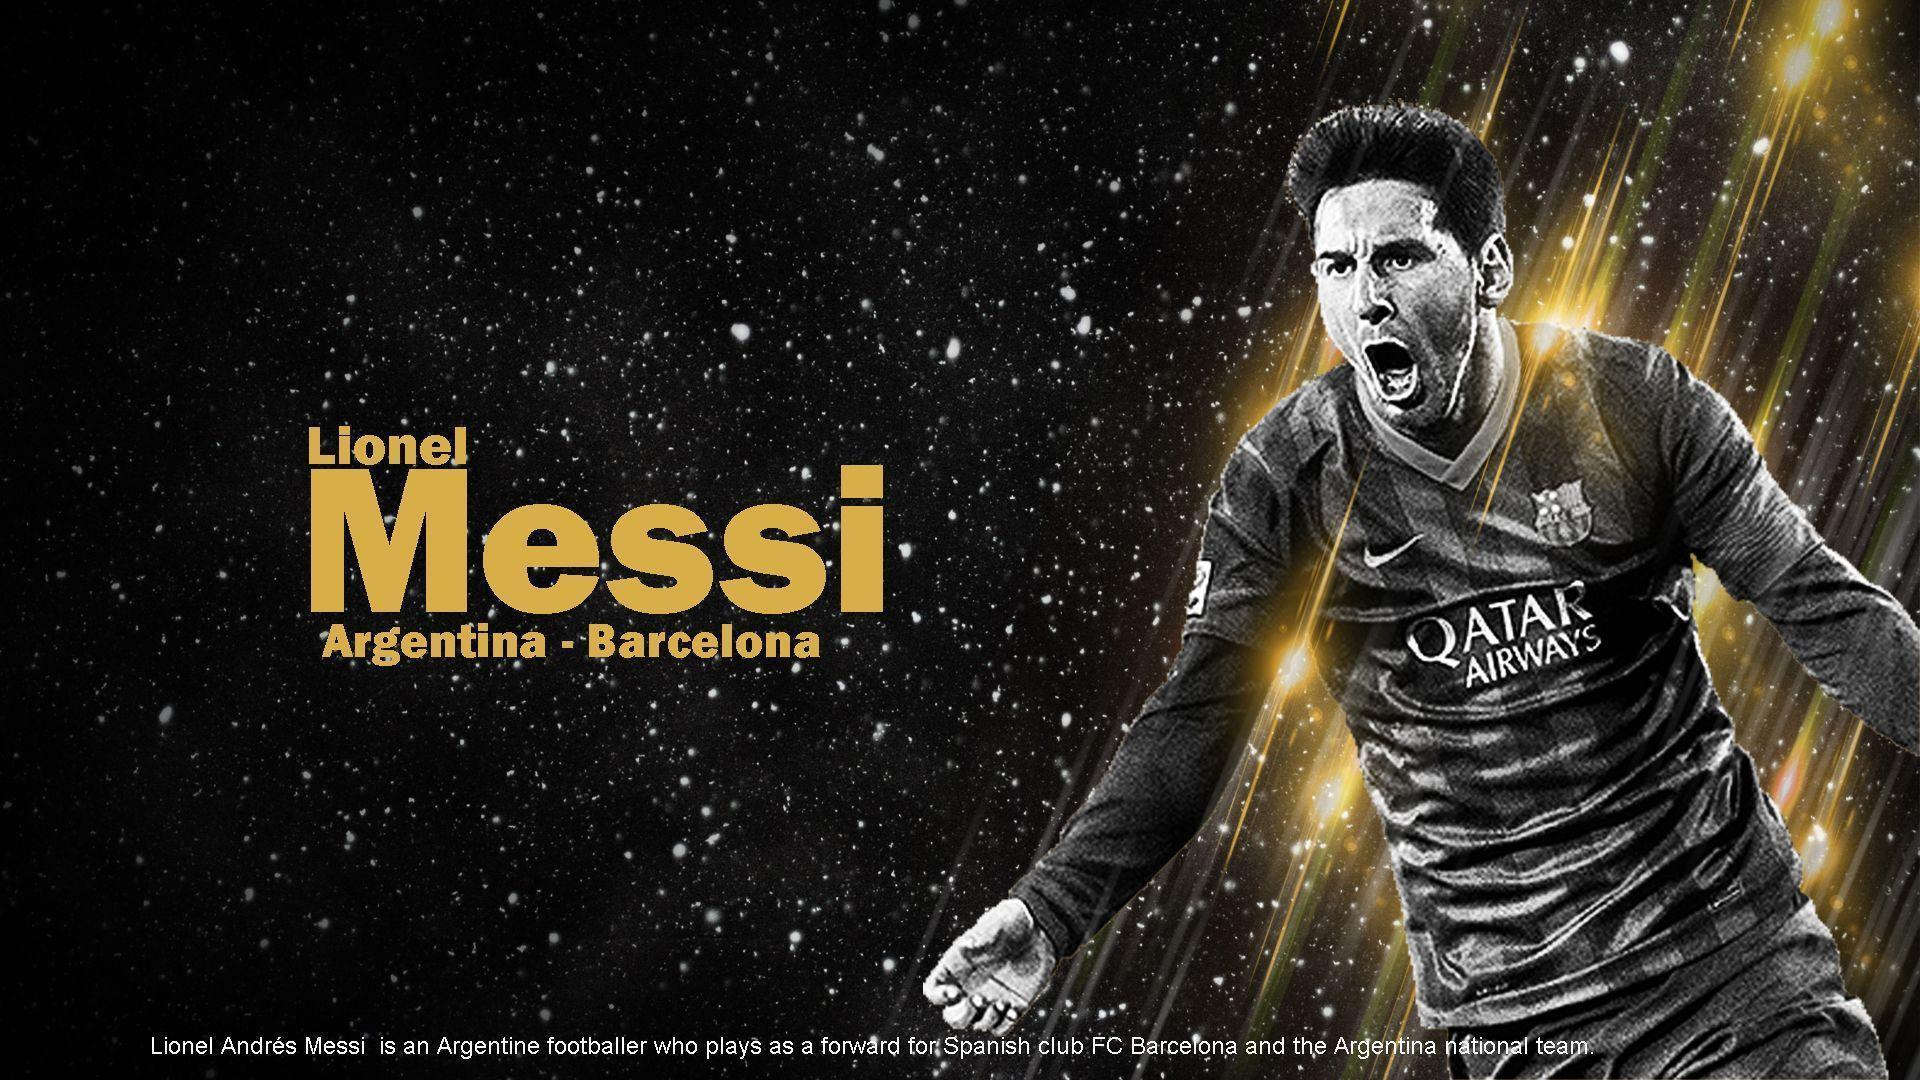 Lionel Messi Wallpapers 2016 1920x1080